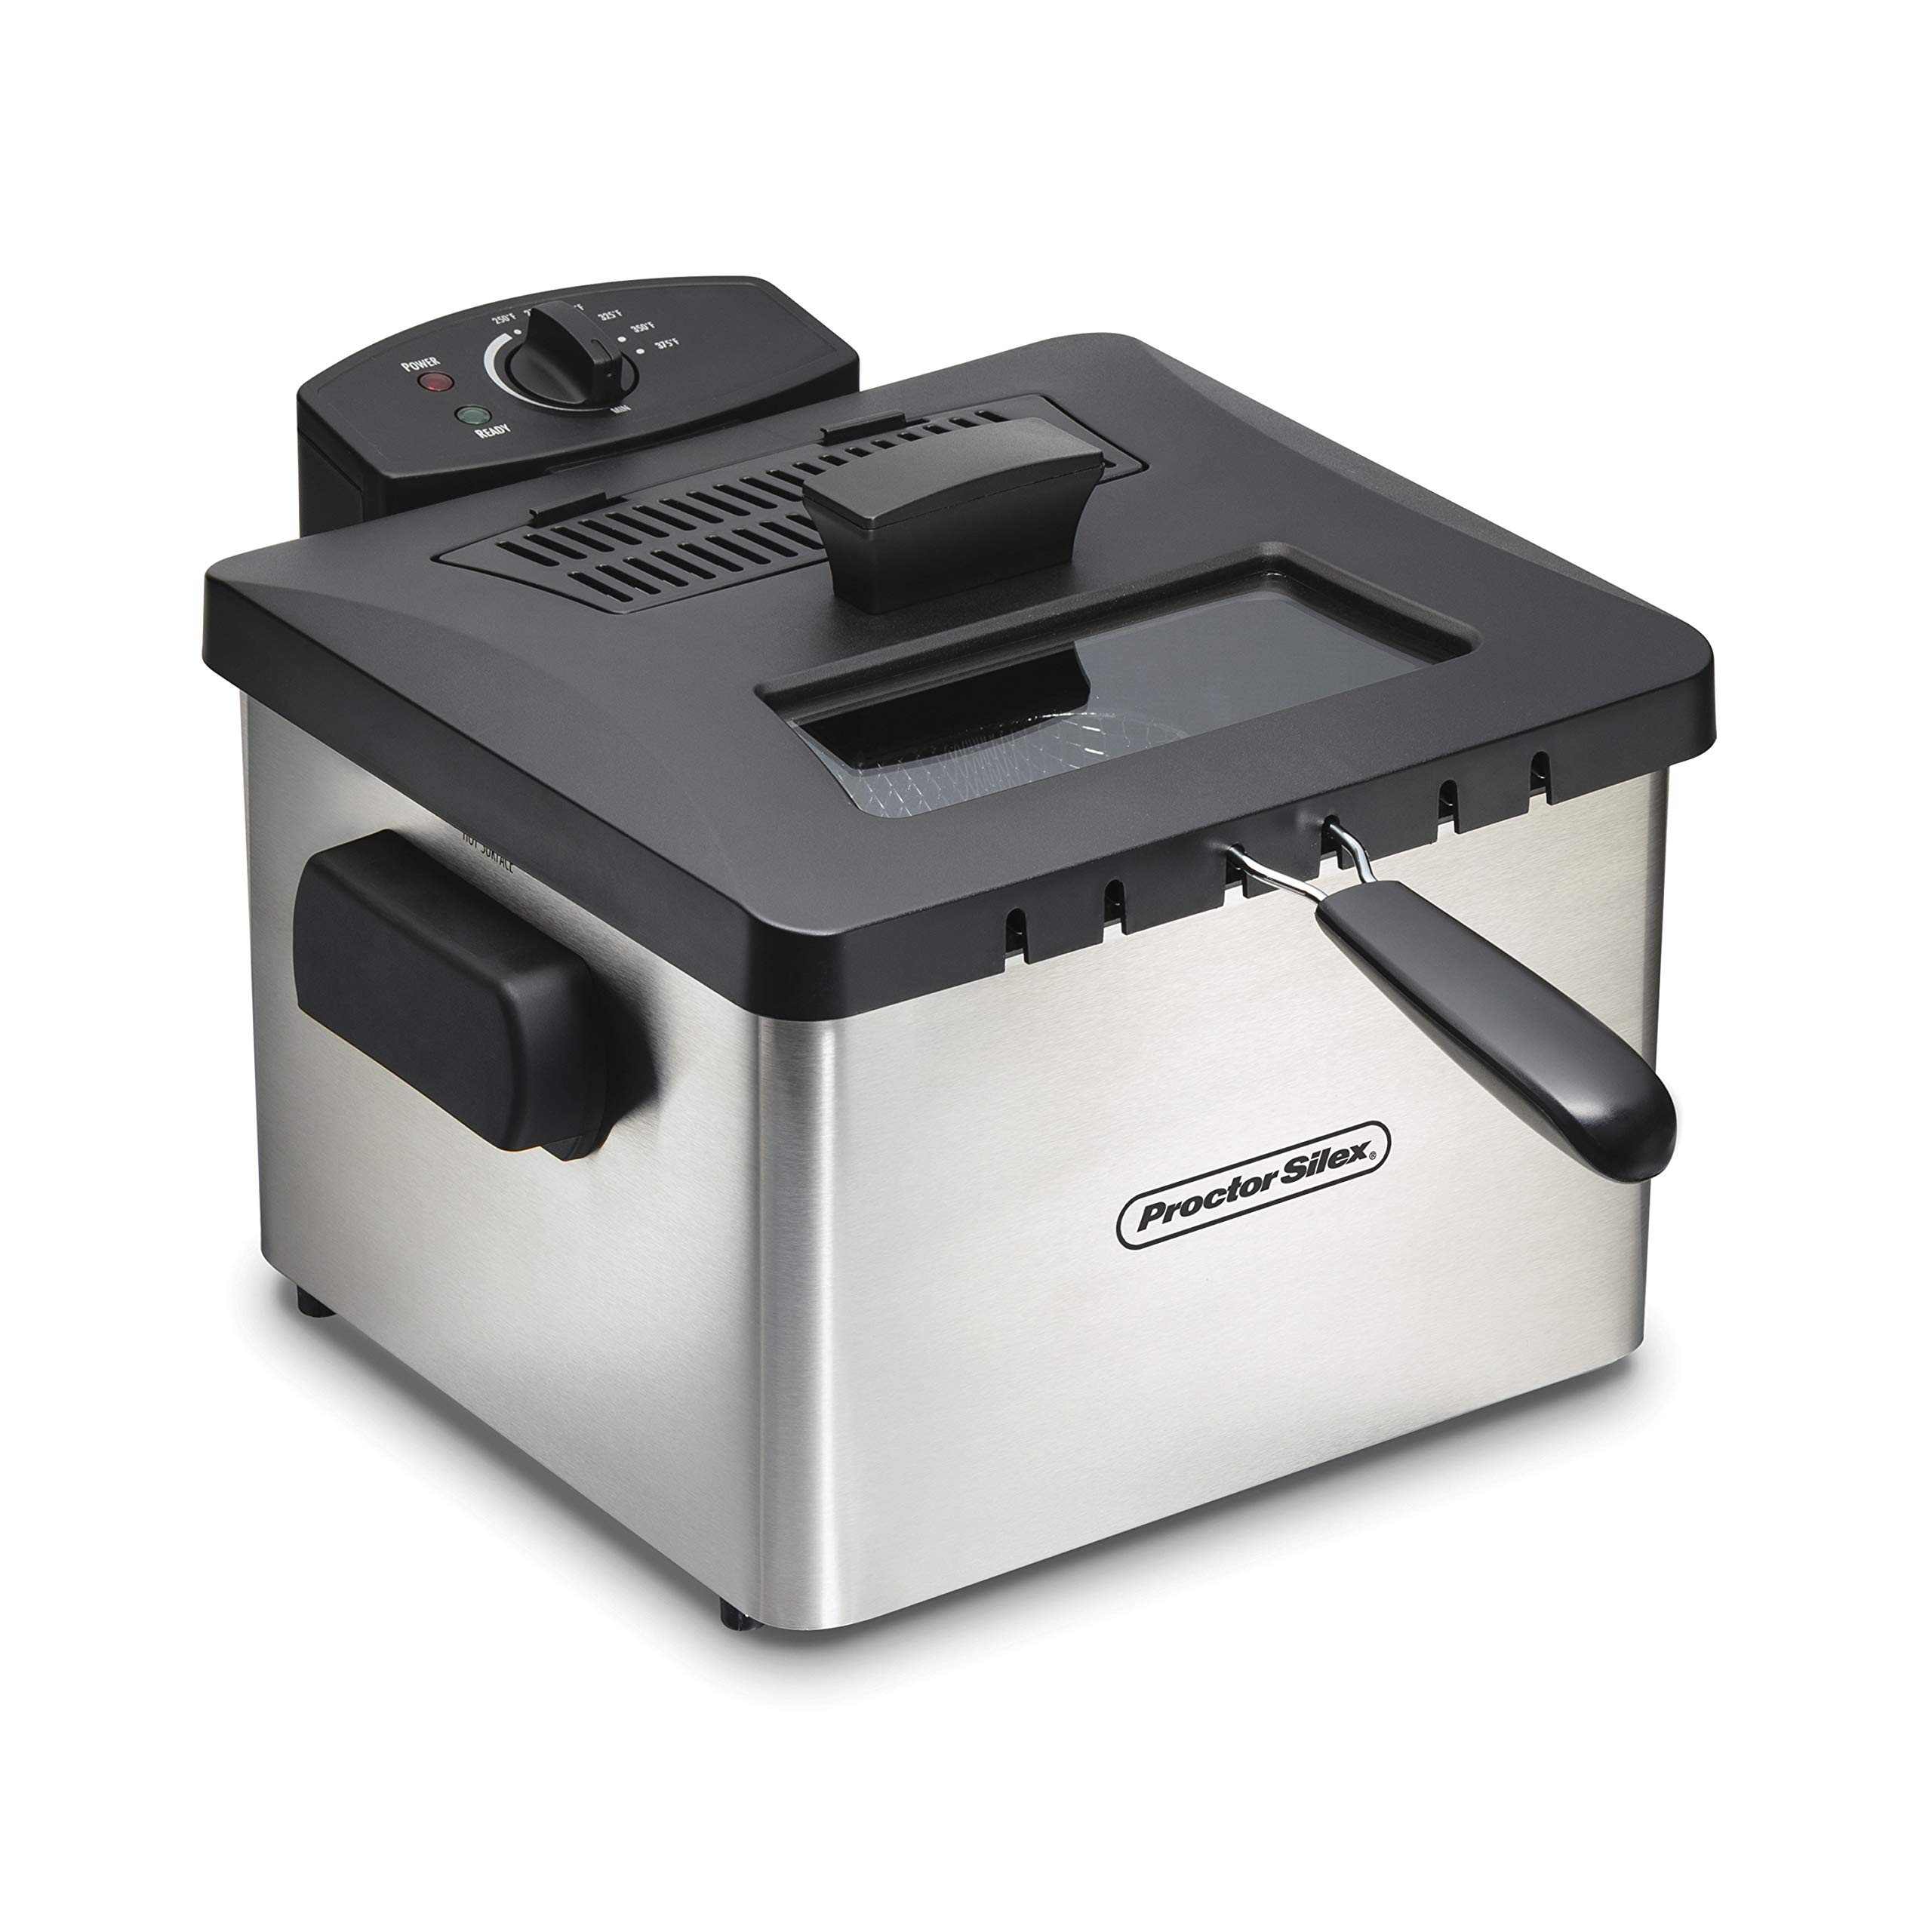 Proctor Silex 35044 Professional-Style Deep Fryer with 5 L Capacity, Silver by Proctor Silex